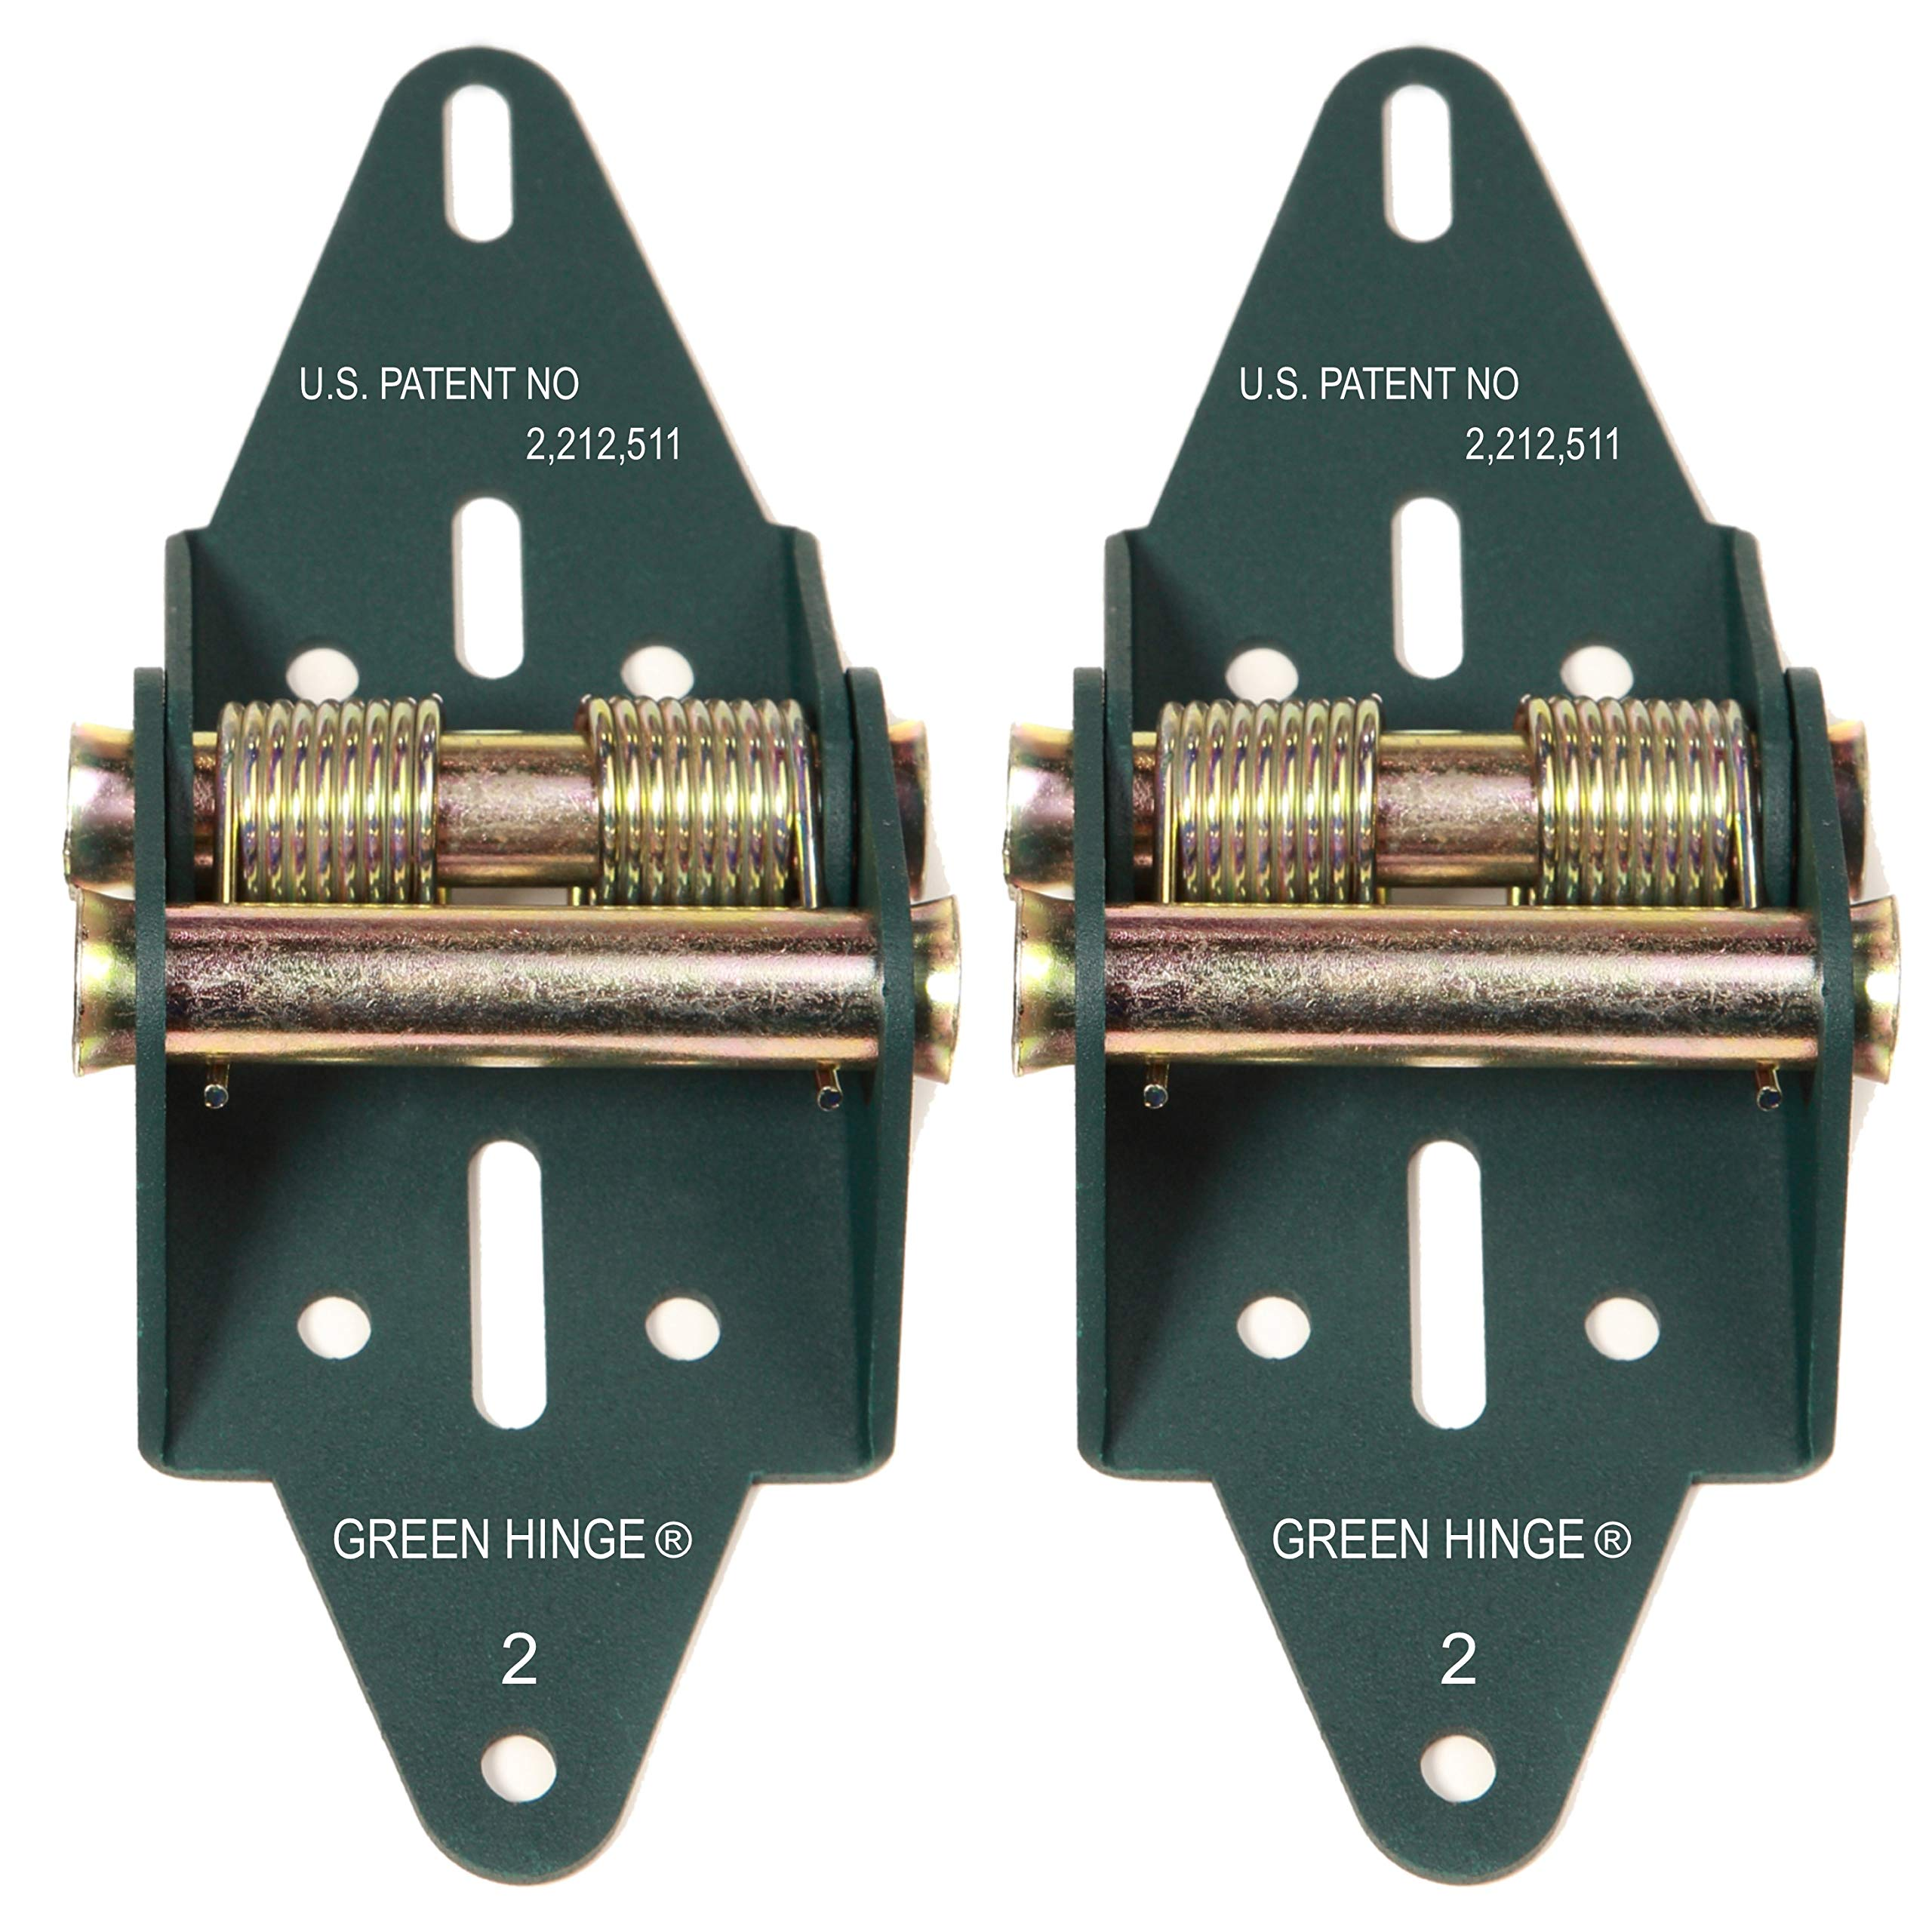 Garage Door Hinge Spring Loaded Self Sealing Energy Saver 4 Panel Commercial MFG# C4416-40 by Green Hinge System (Image #1)